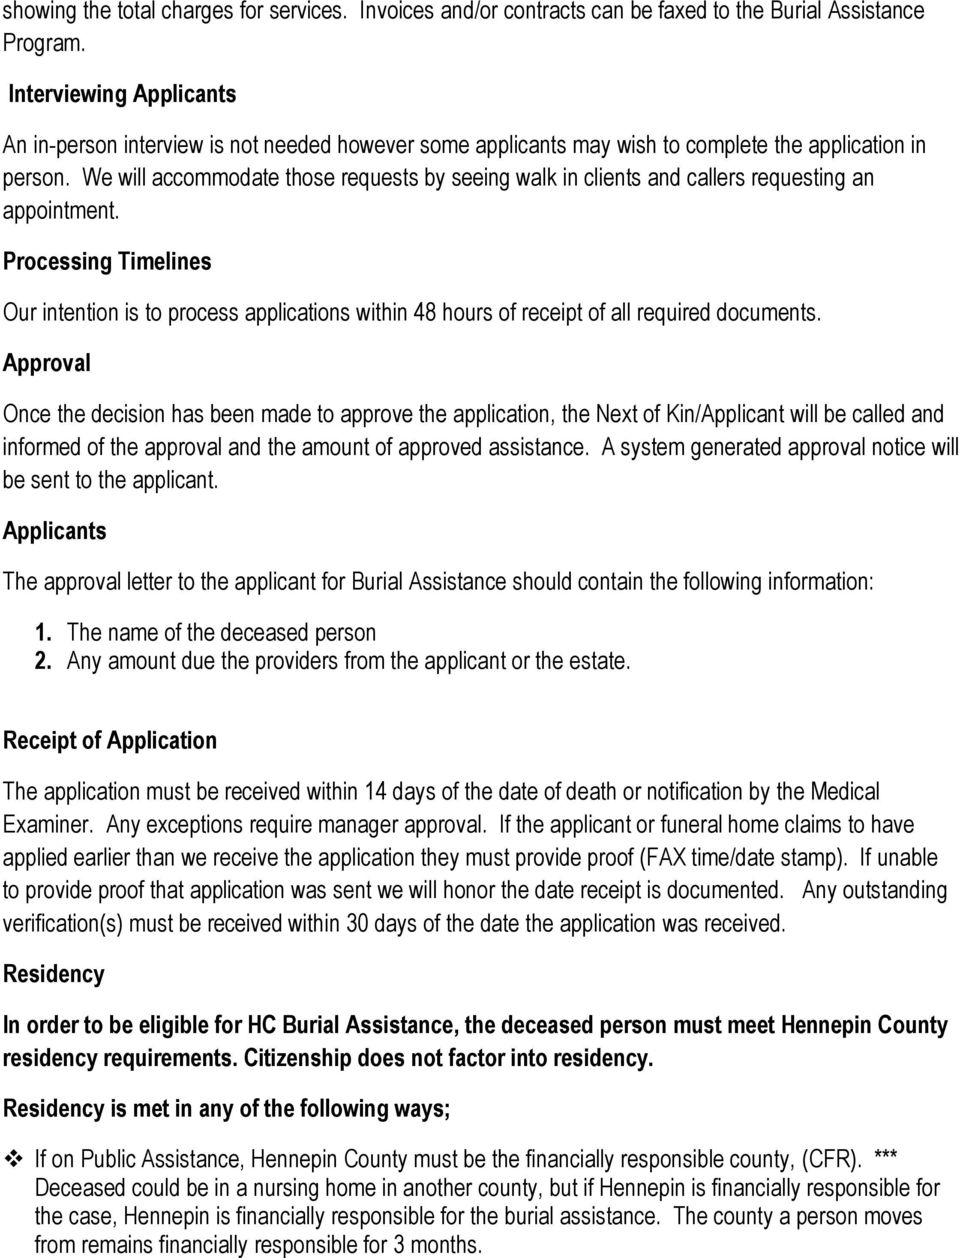 Hennepin County Burial Assistance Policy January 01 Pdf